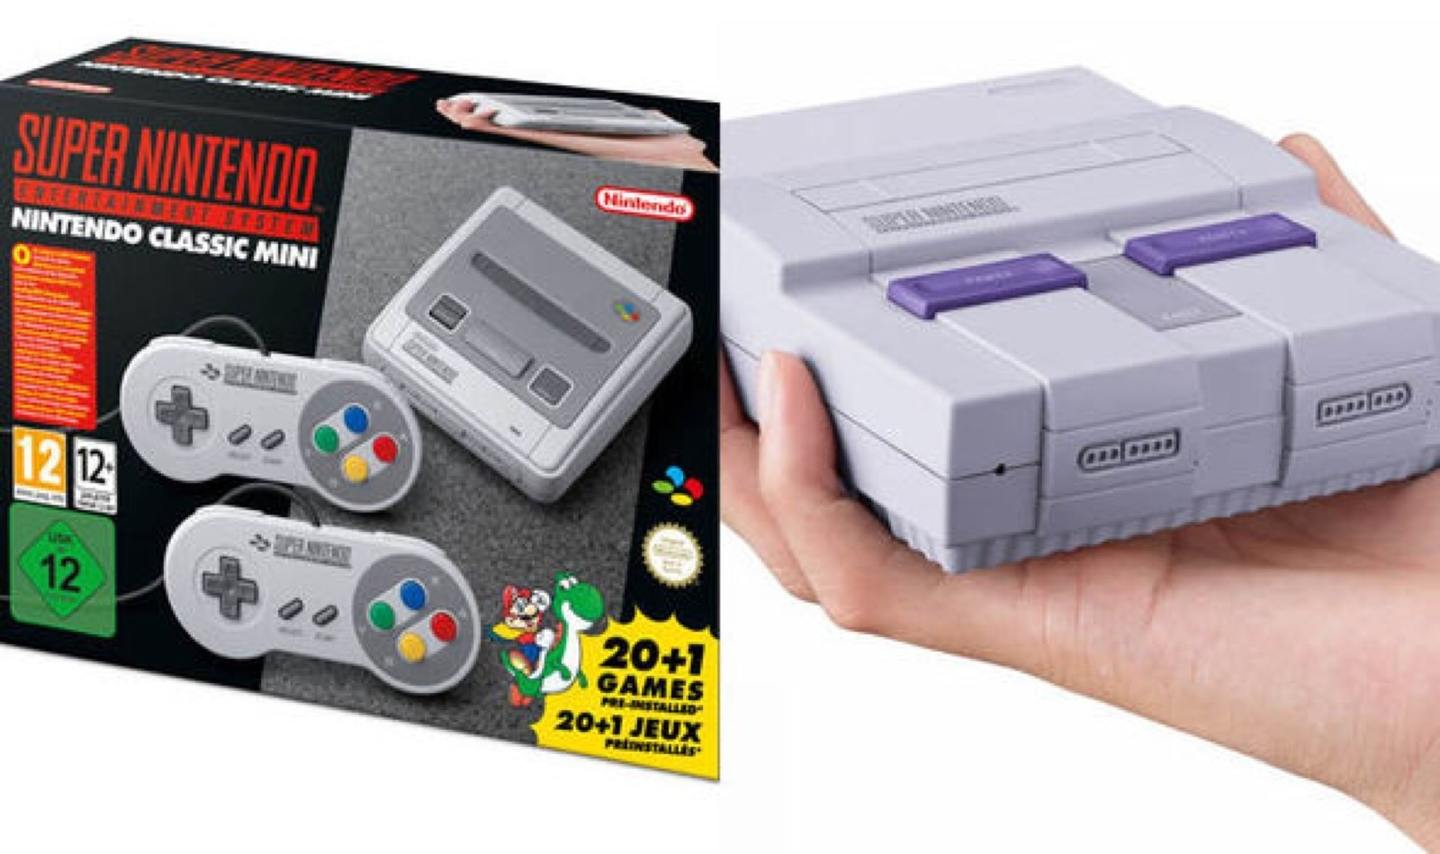 Where to Buy the SNES Classic?